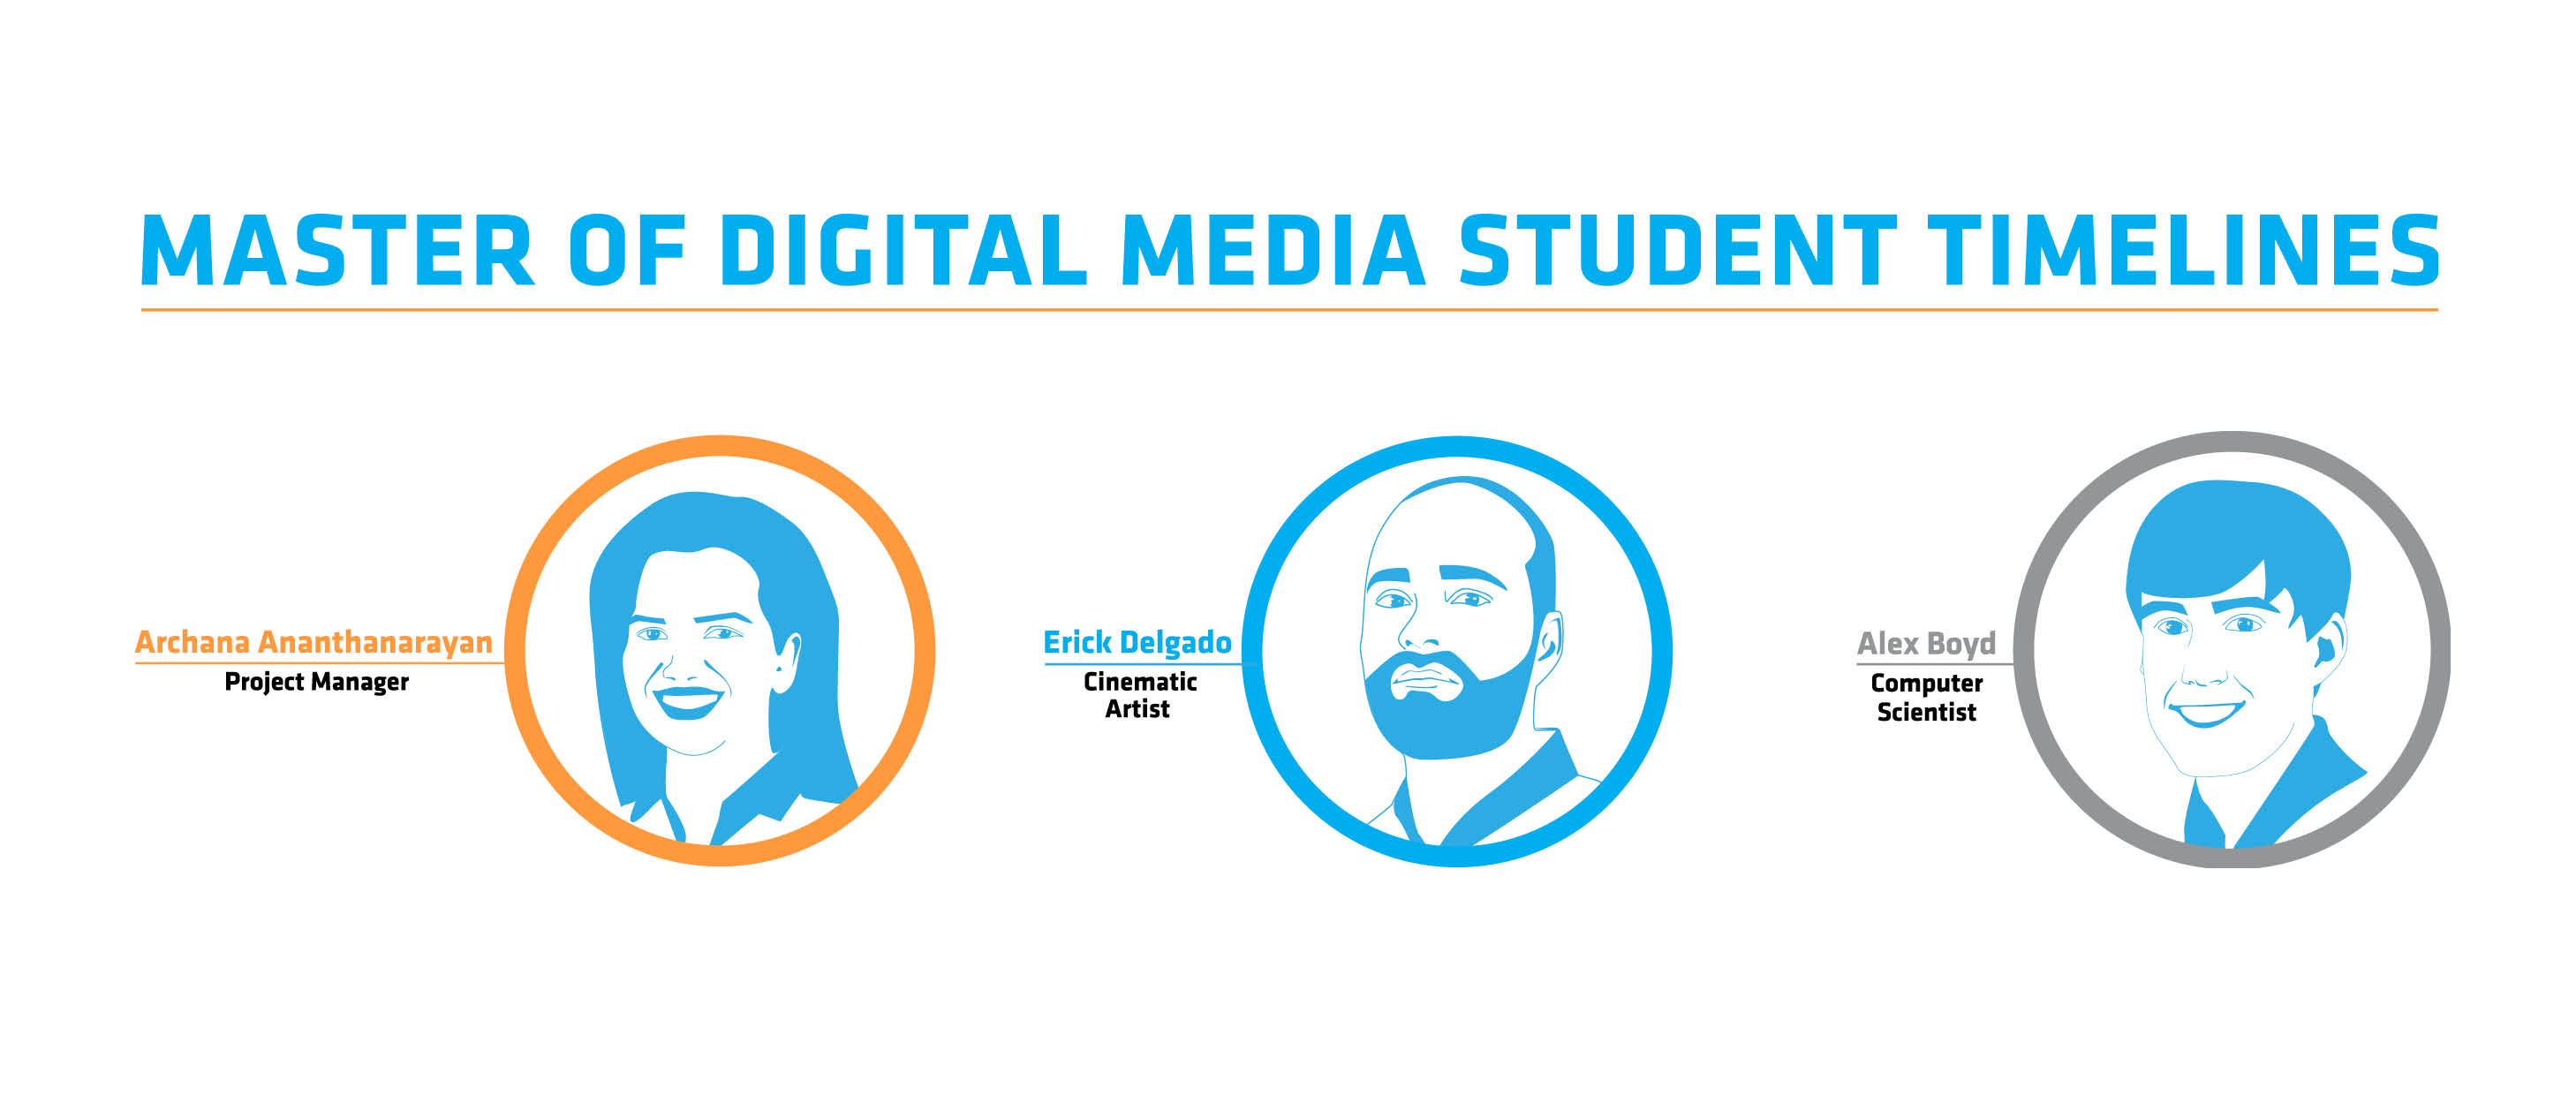 a timeline of student success the centre for digital media